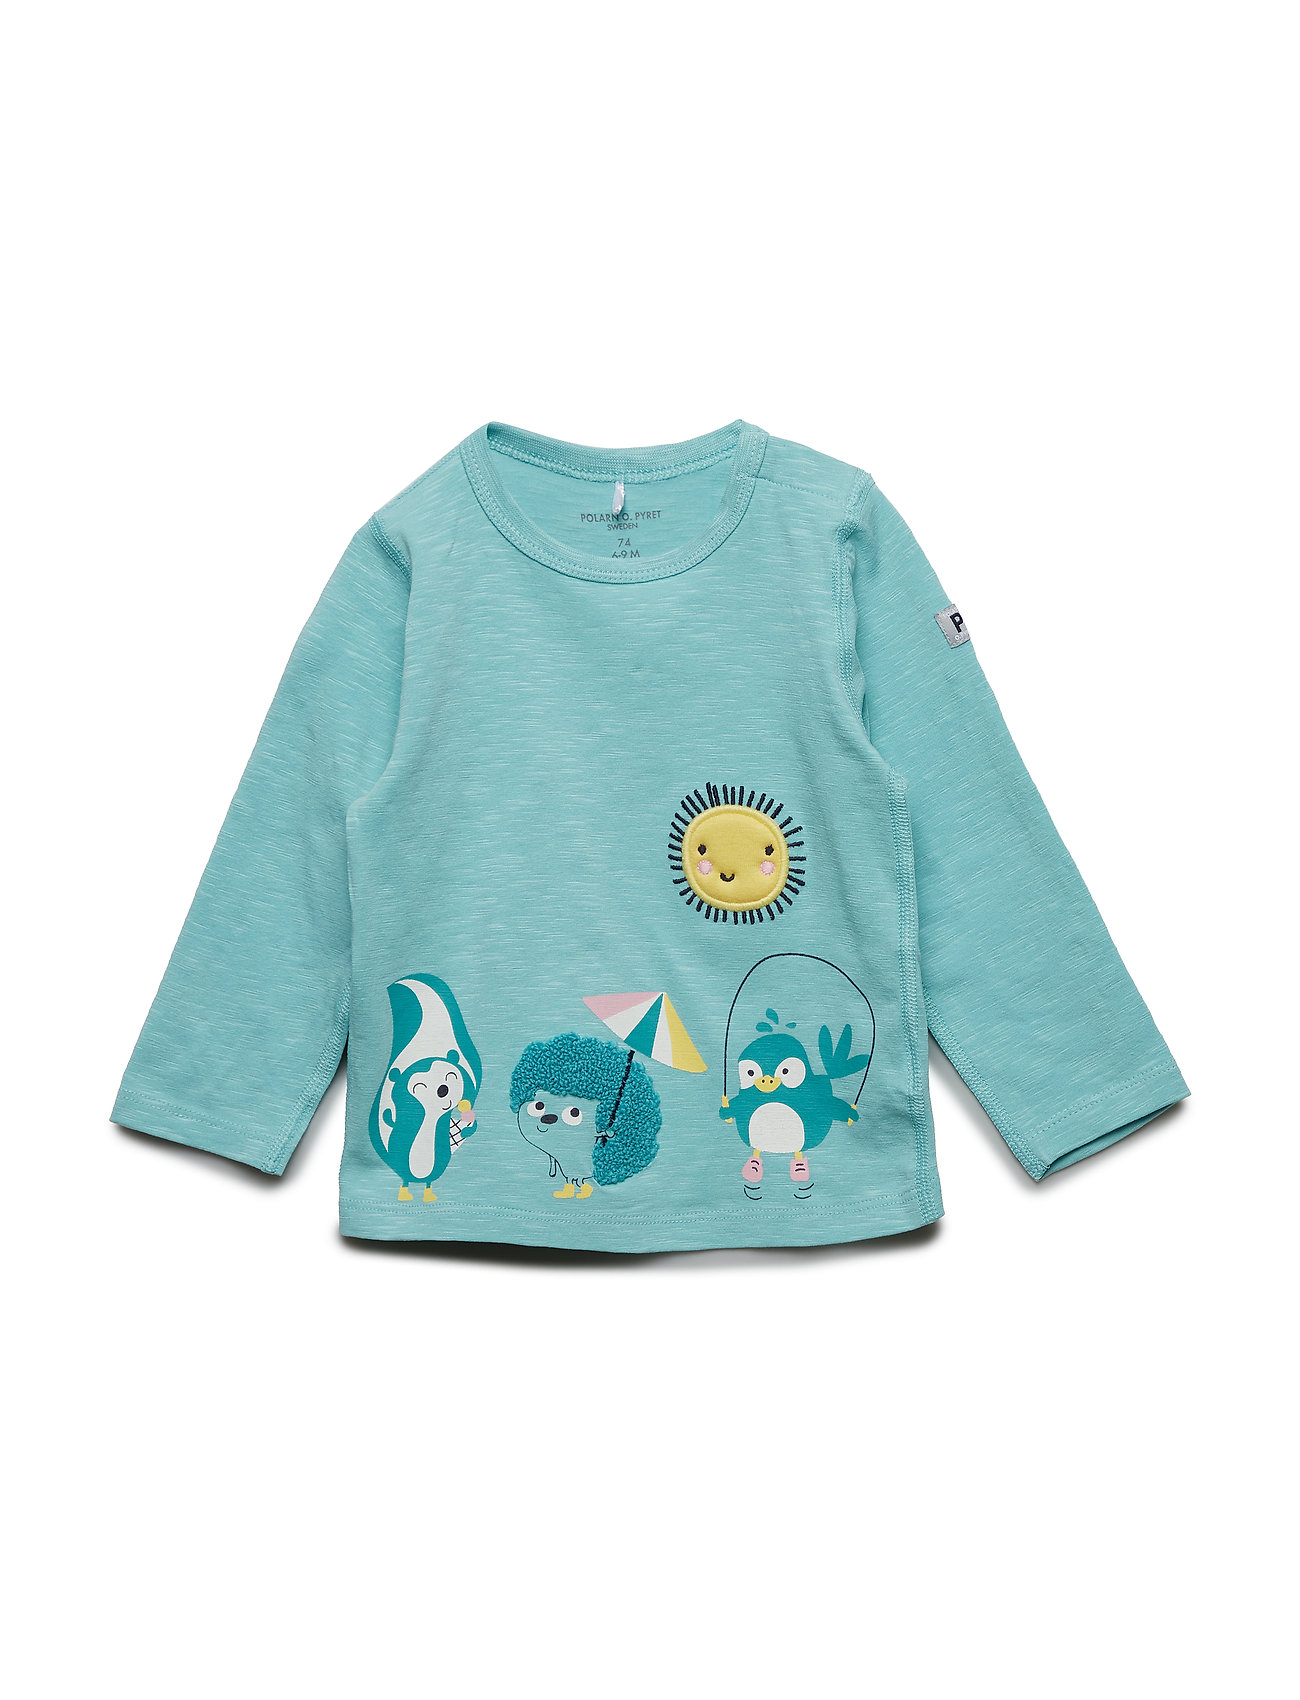 Polarn O. Pyret Top L/S jersey Baby